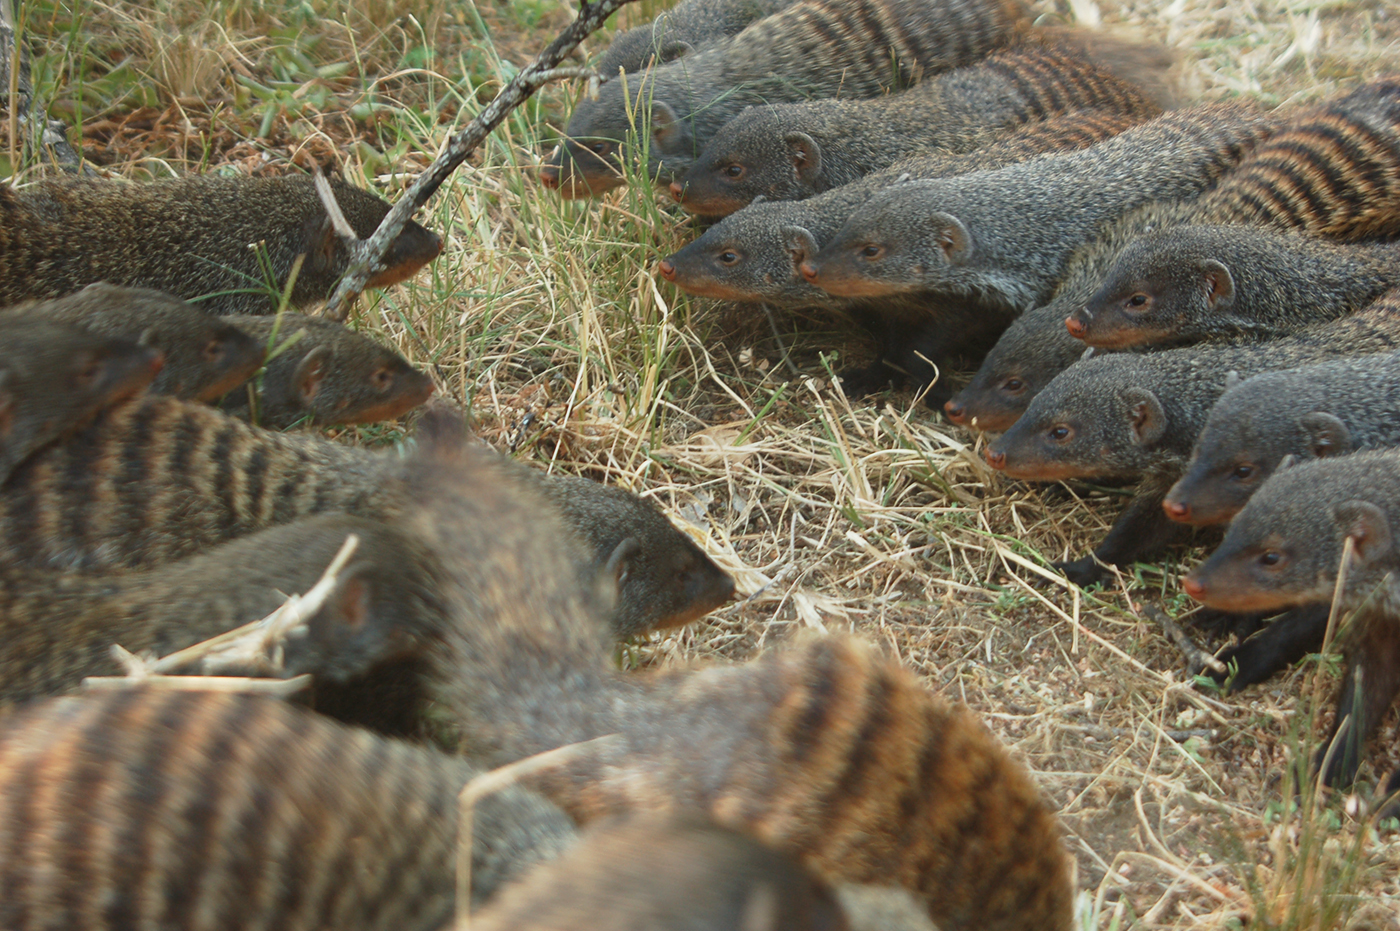 Mongooses, like humans, are among the few mammals that go to war with each another. Image credit - Harry Marshall